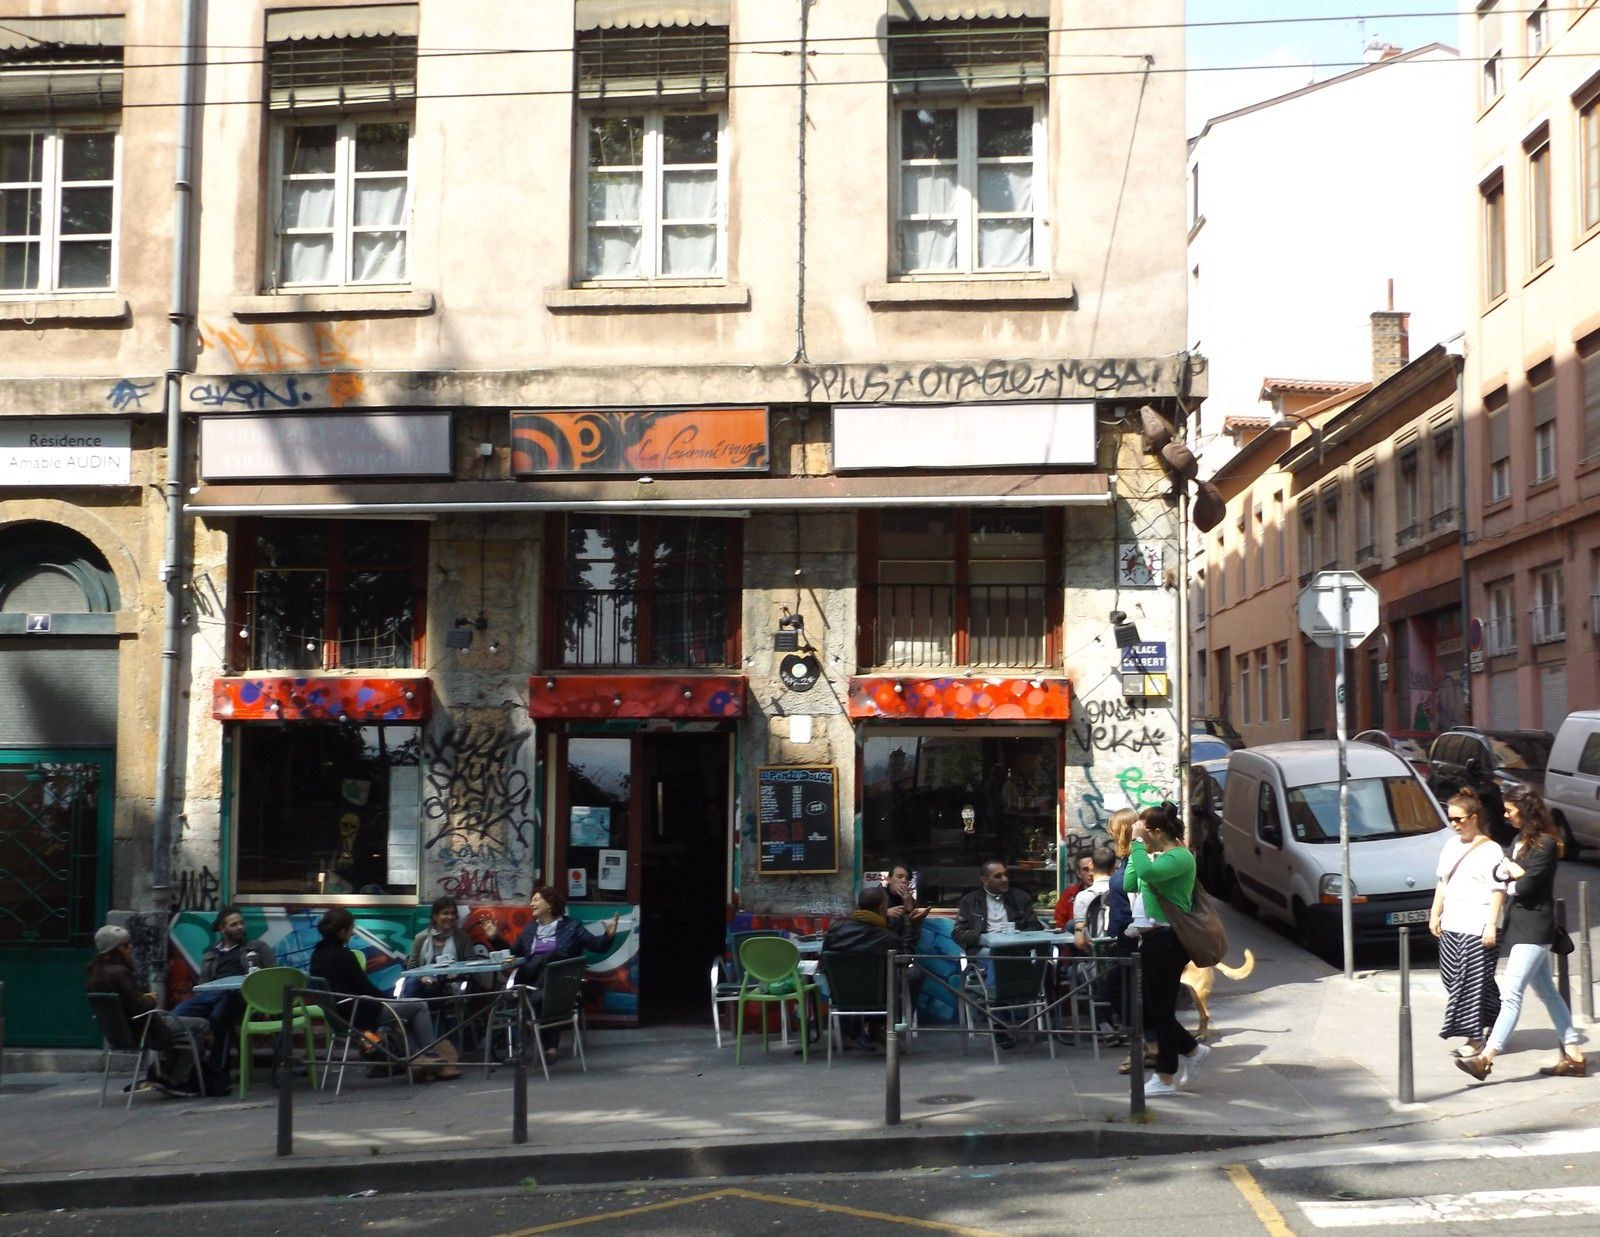 Bistrot populaire